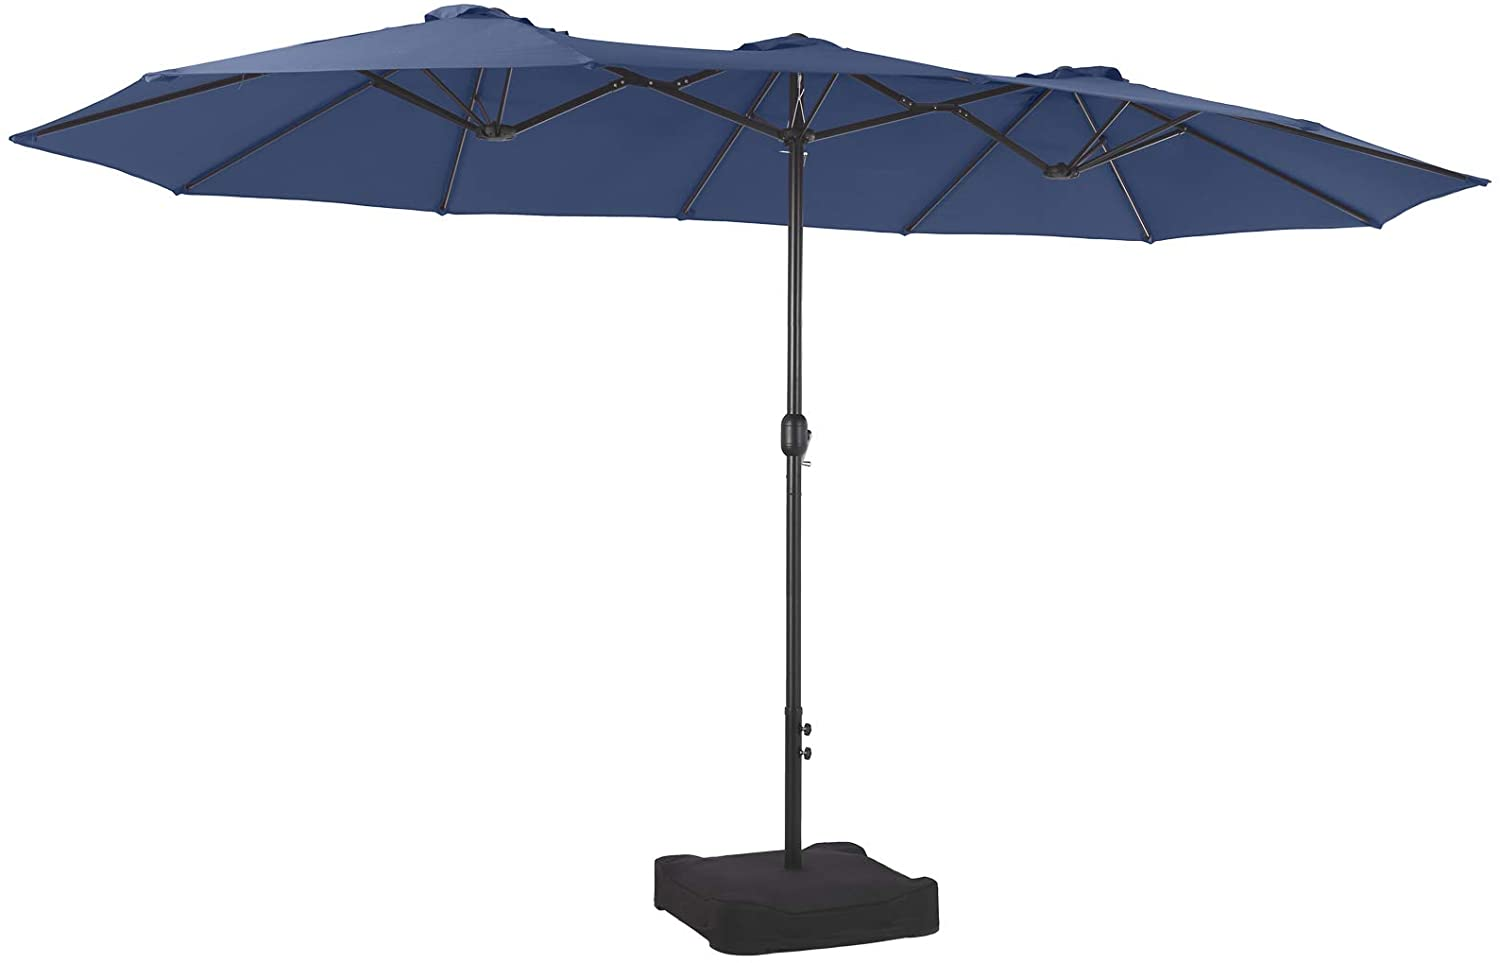 PHI VILLA 15ft Patio Umbrella Double-Sided Outdoor Market Extra Large Umbrella with Crank, Umbrella Base Included (Blue)